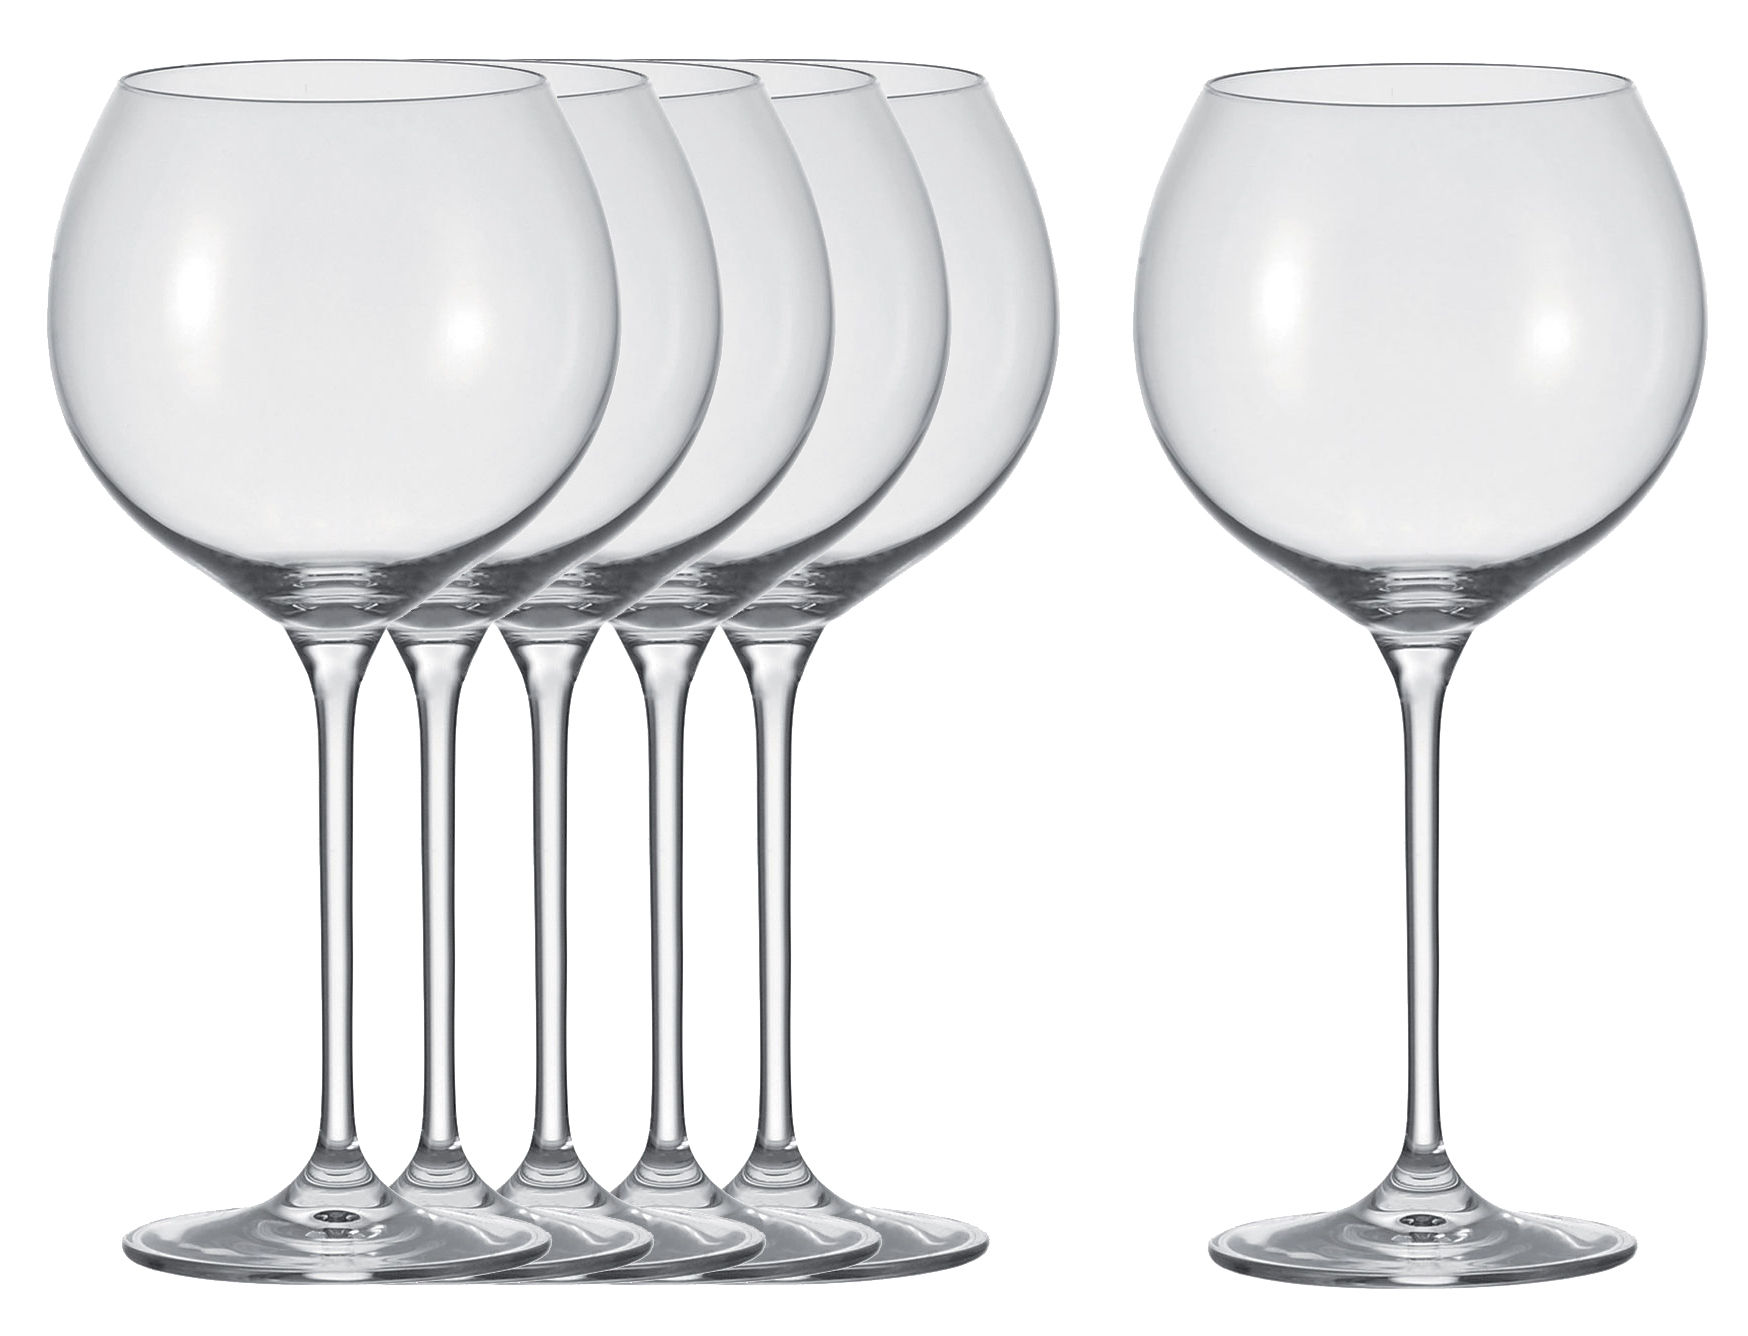 verre vin cheers lot de 6 verres bourgogne. Black Bedroom Furniture Sets. Home Design Ideas